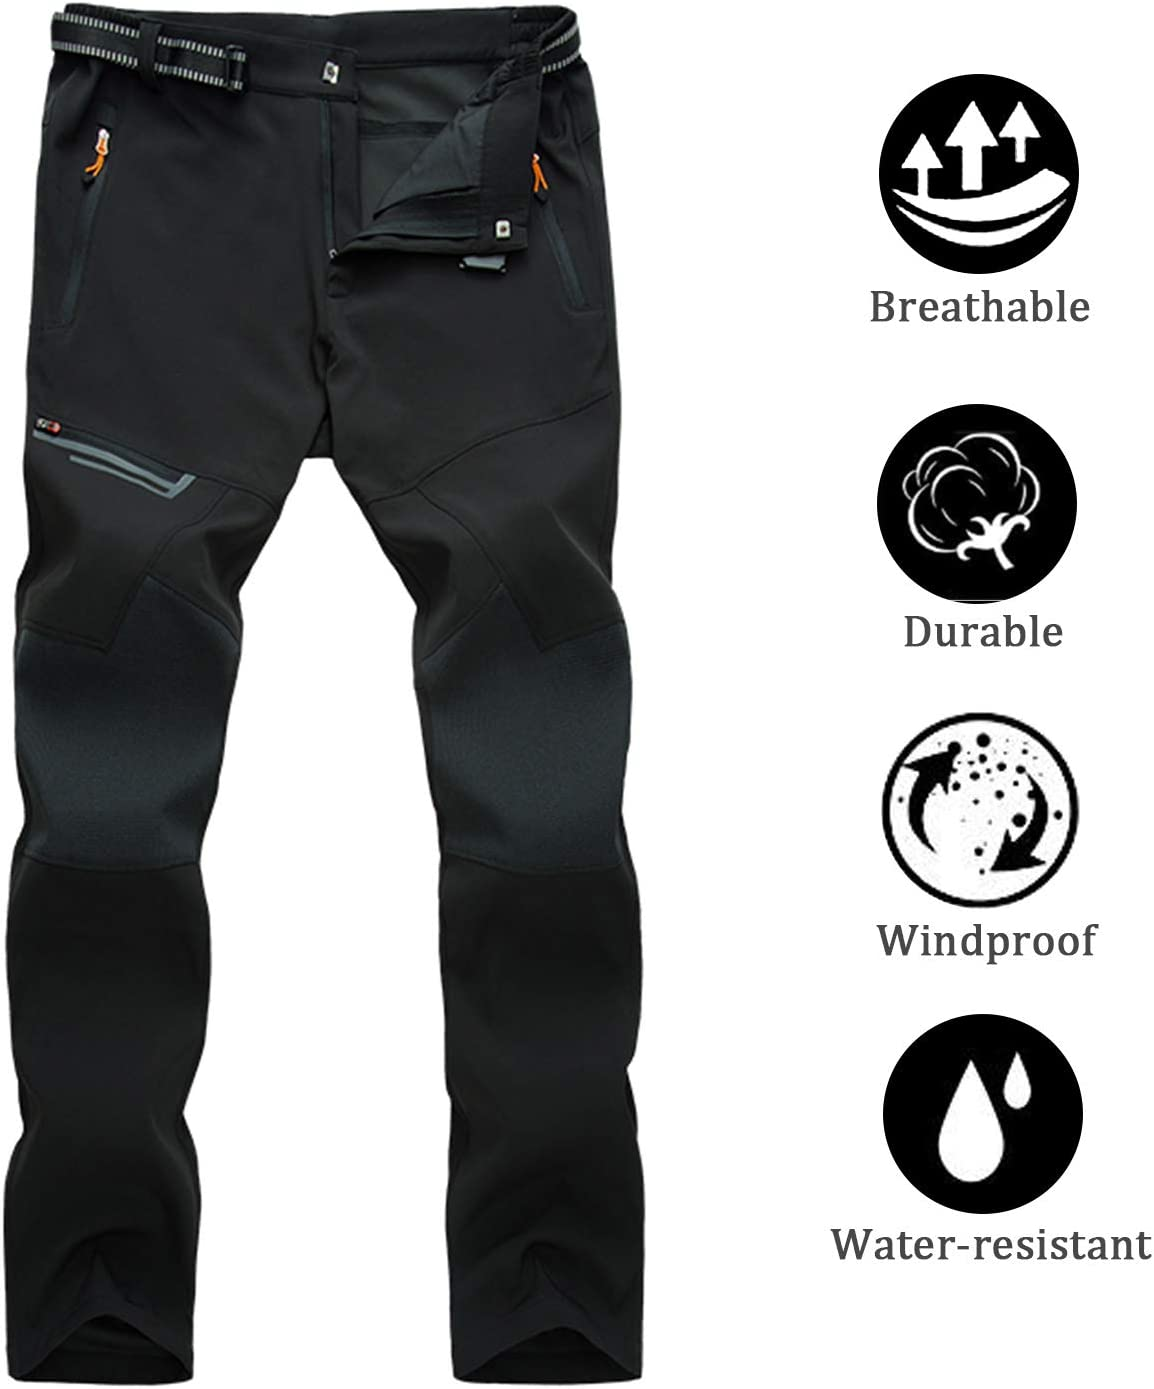 LHHMZ Women/'s Hiking Trousers Windproof Breathable Outdoor Sports Climbing Running Jogging Riding Trousers Slim Fit